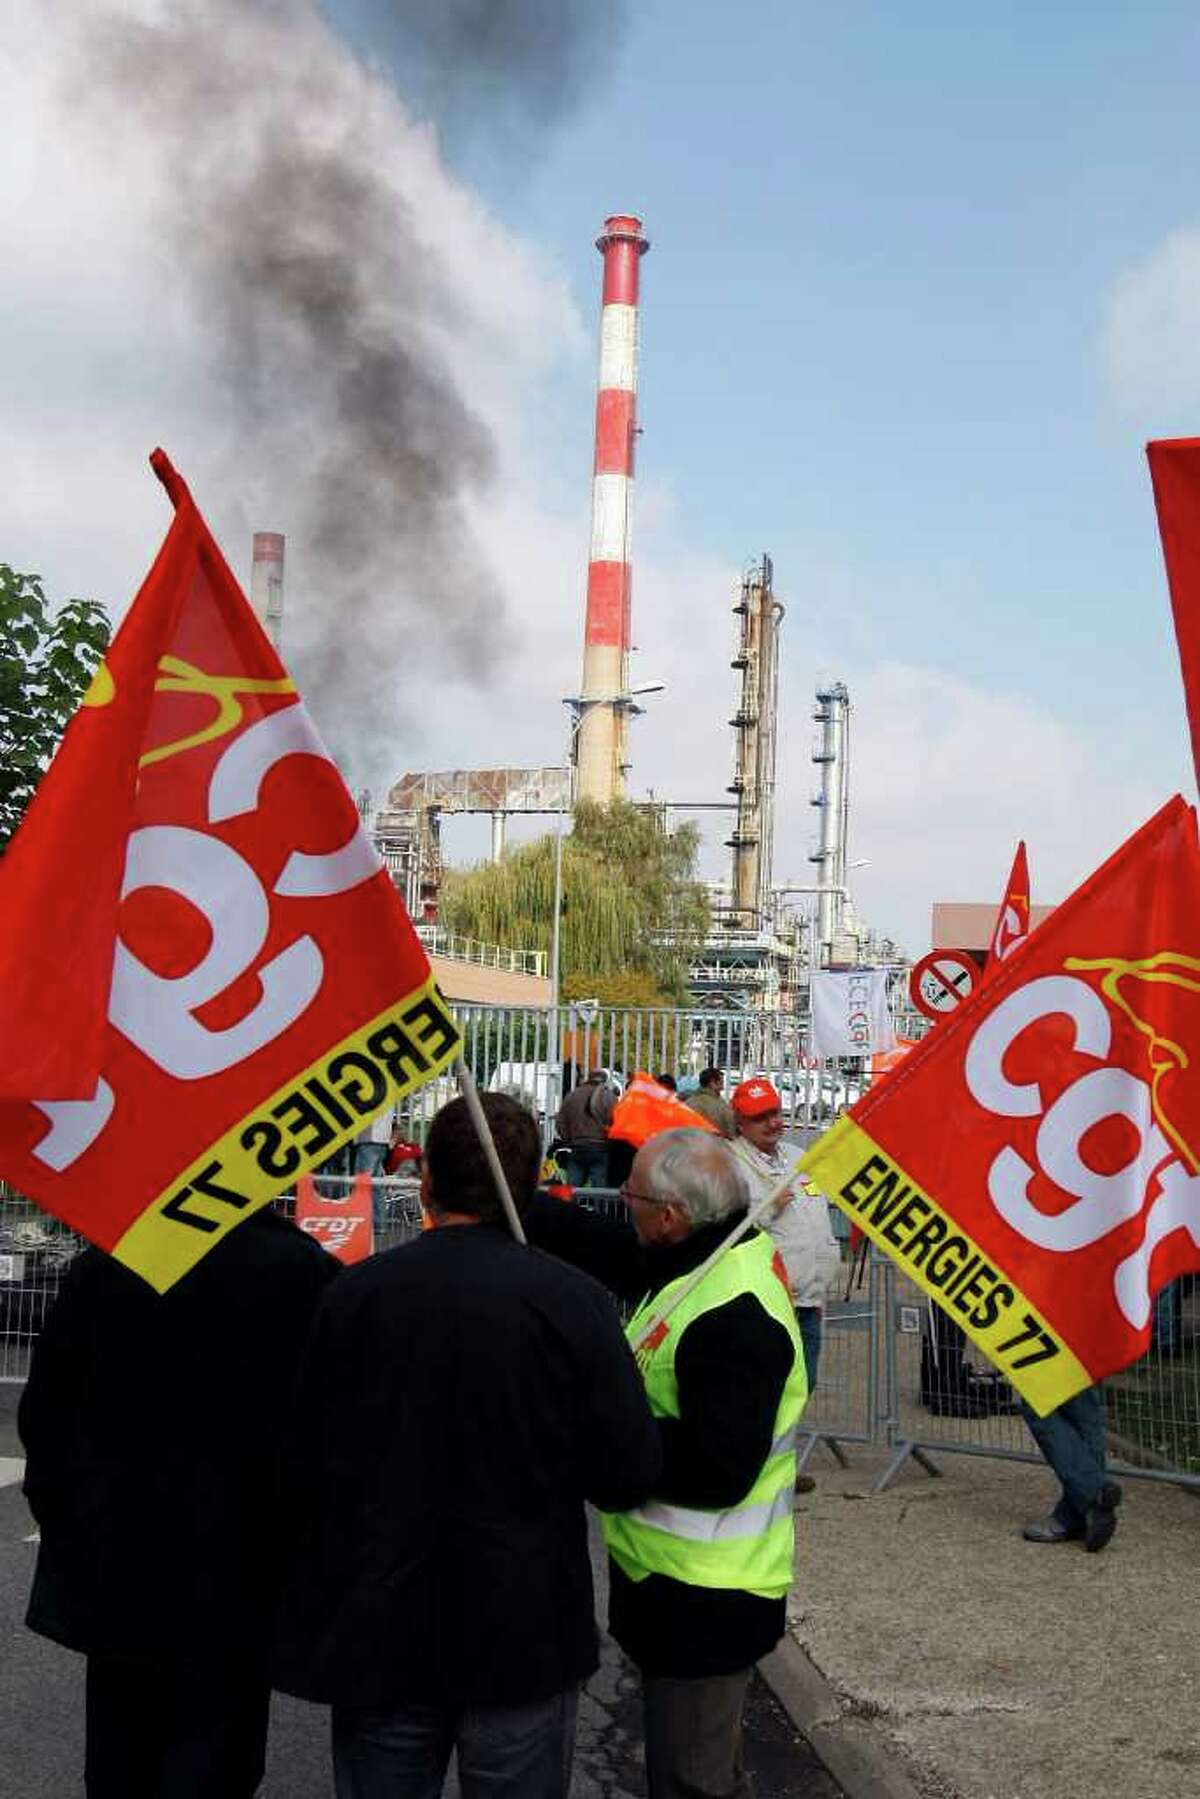 French Union workers block the entrance of the oil refinery of Grandpuits eastern of Paris, Monday, Oct. 18 , 2010. Some oil workers pledged to keep up a protest at refineries, and one union warned of looming gasoline shortages as an open-ended strike against President Nicolas Sarkozy's plan to raise the retirement age to 62 entered its seventh day. CGT on flags stands for General Confederation of Work union. (AP Photo/Francois Mori)